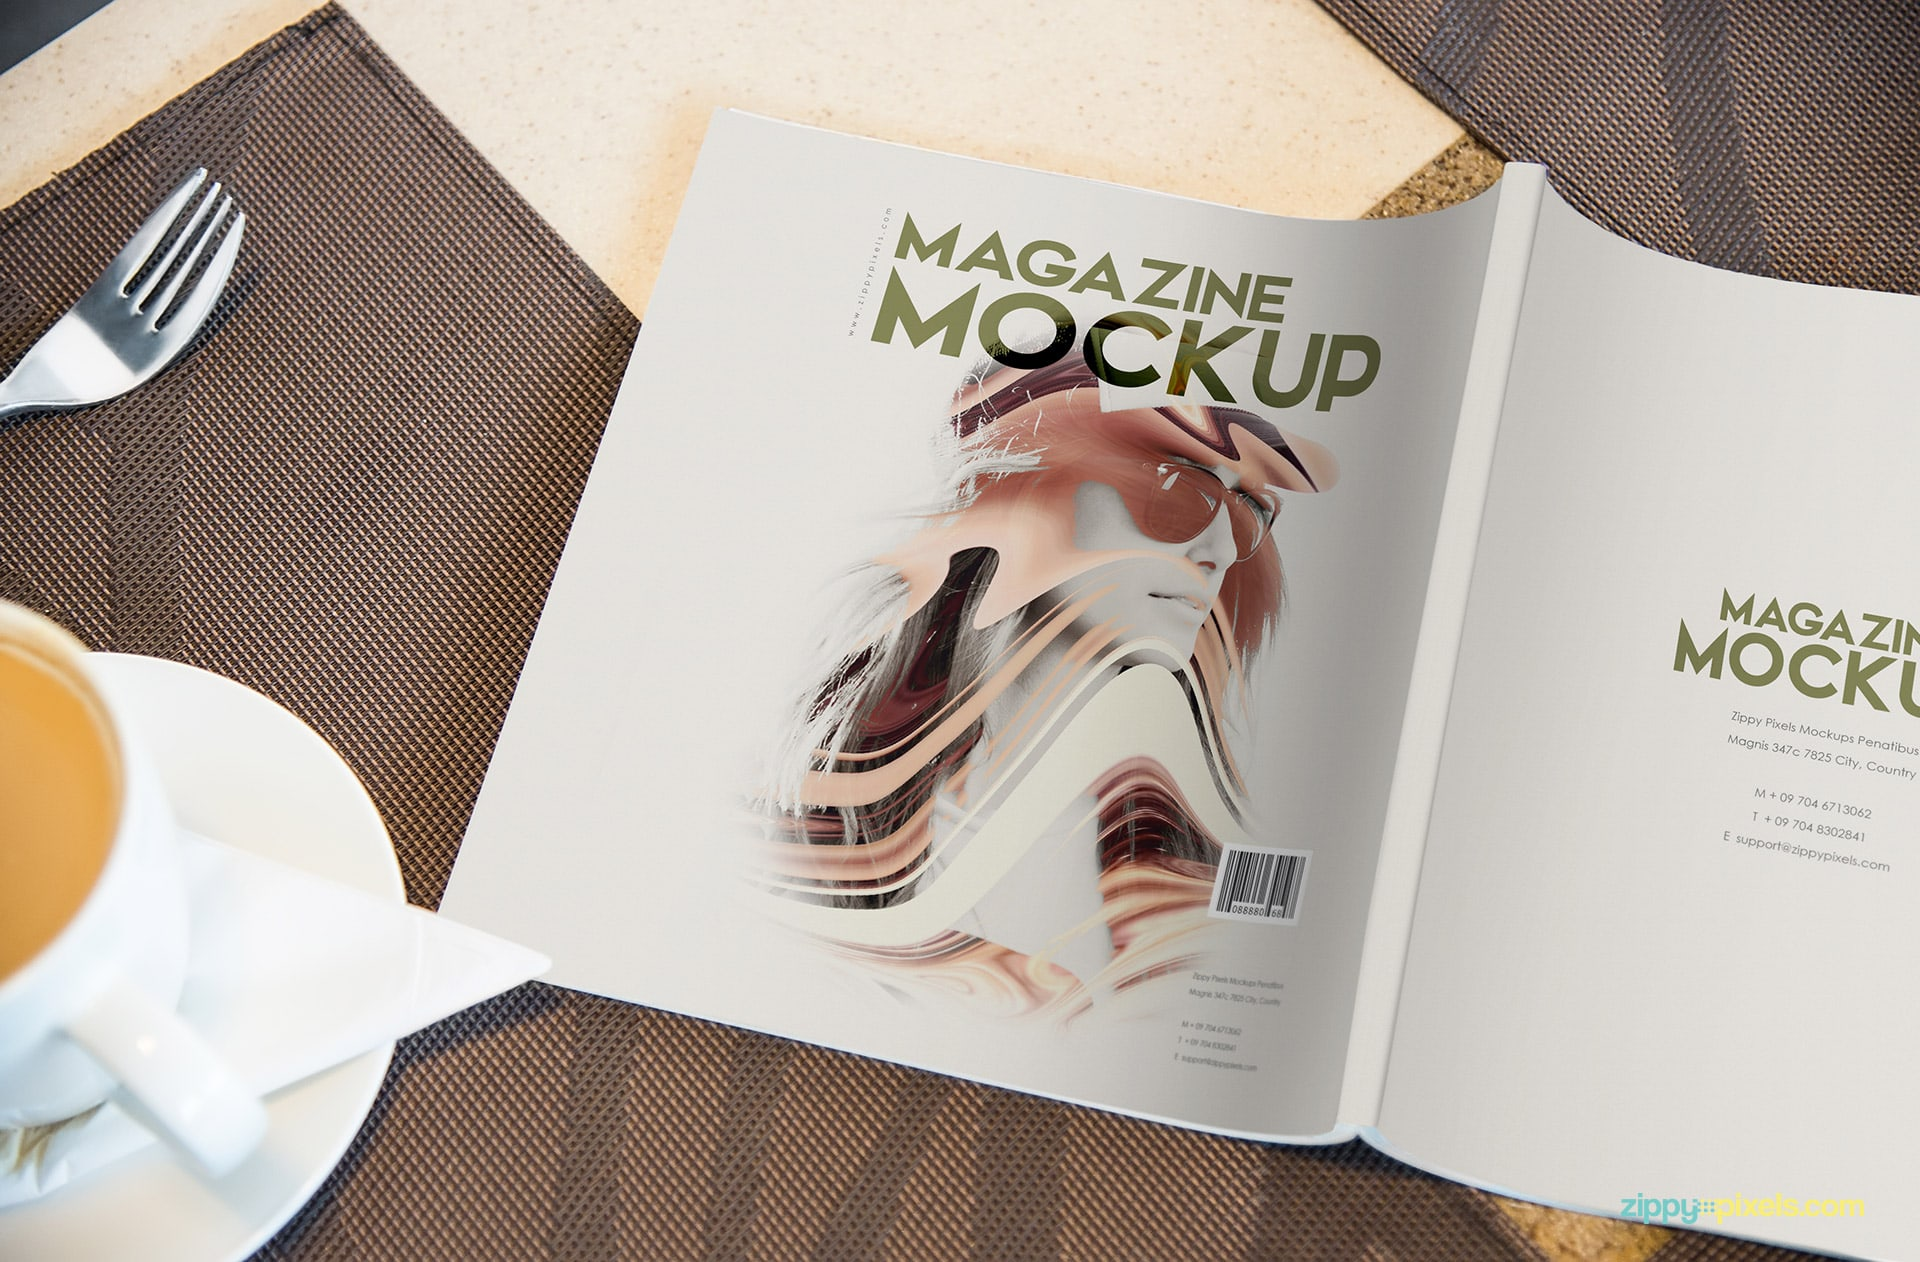 upside down magazine mock-up